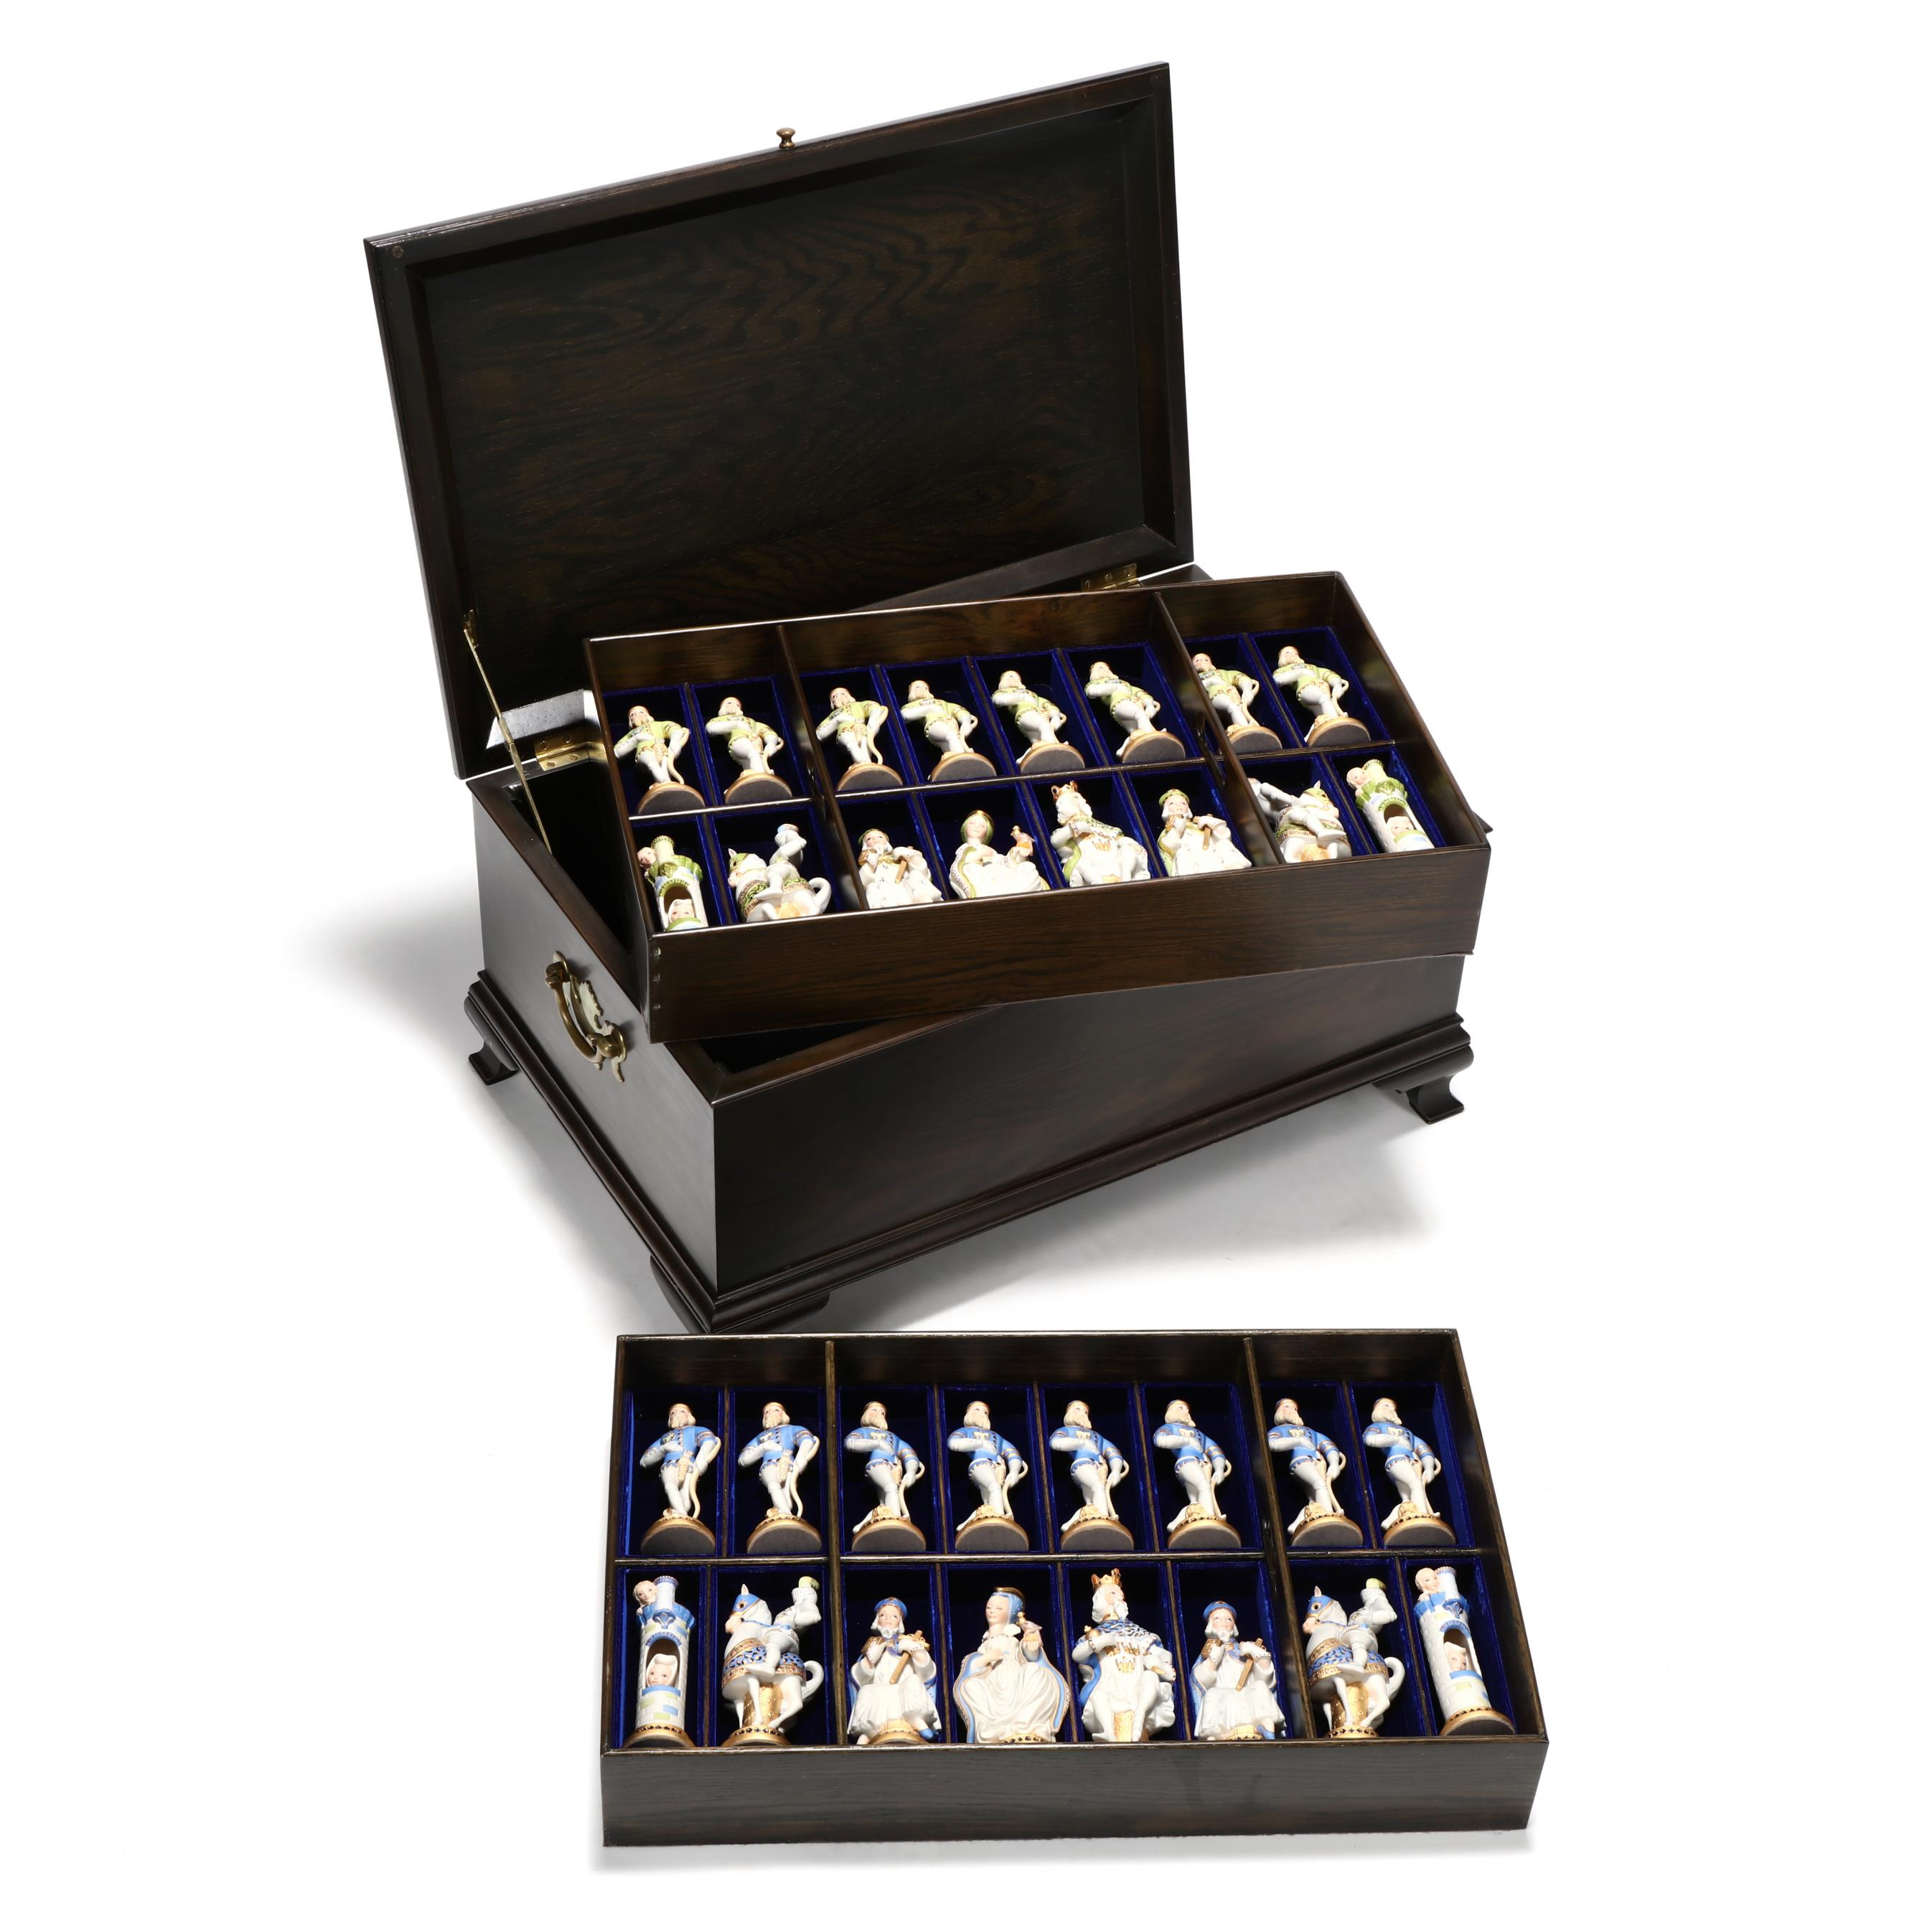 cybis-limited-edition-porcelain-chess-set